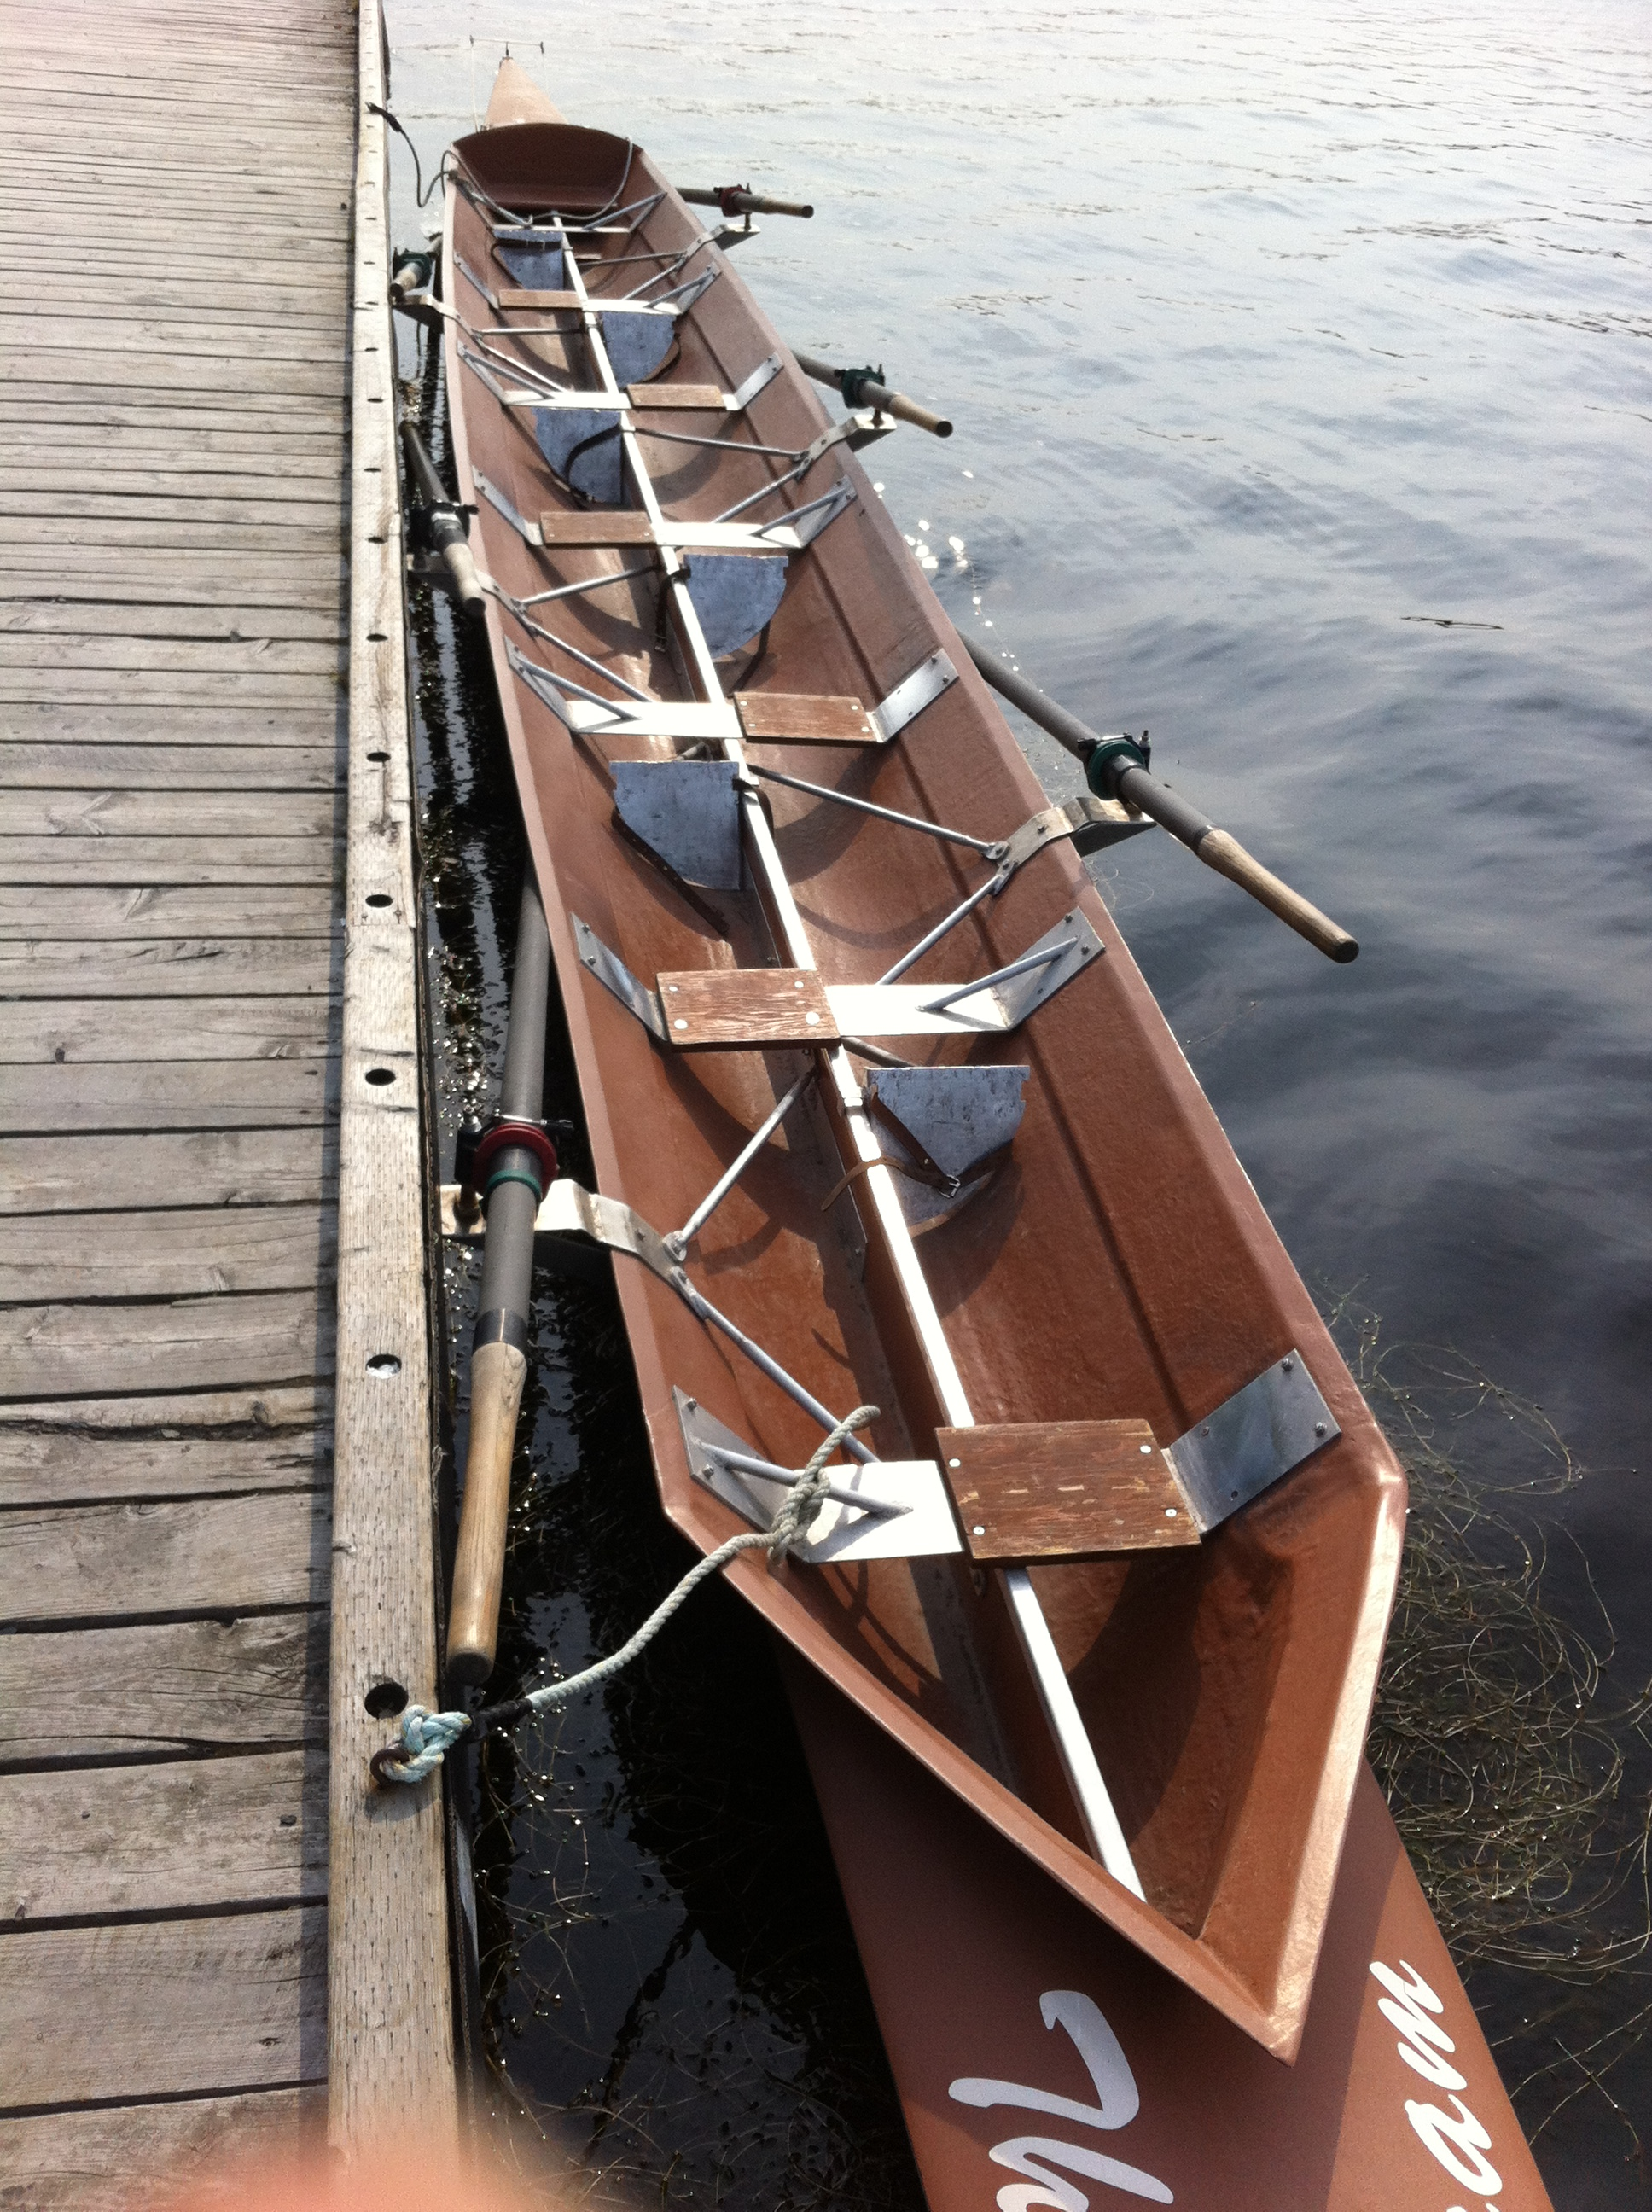 The Boat Fixed Seat Rowing